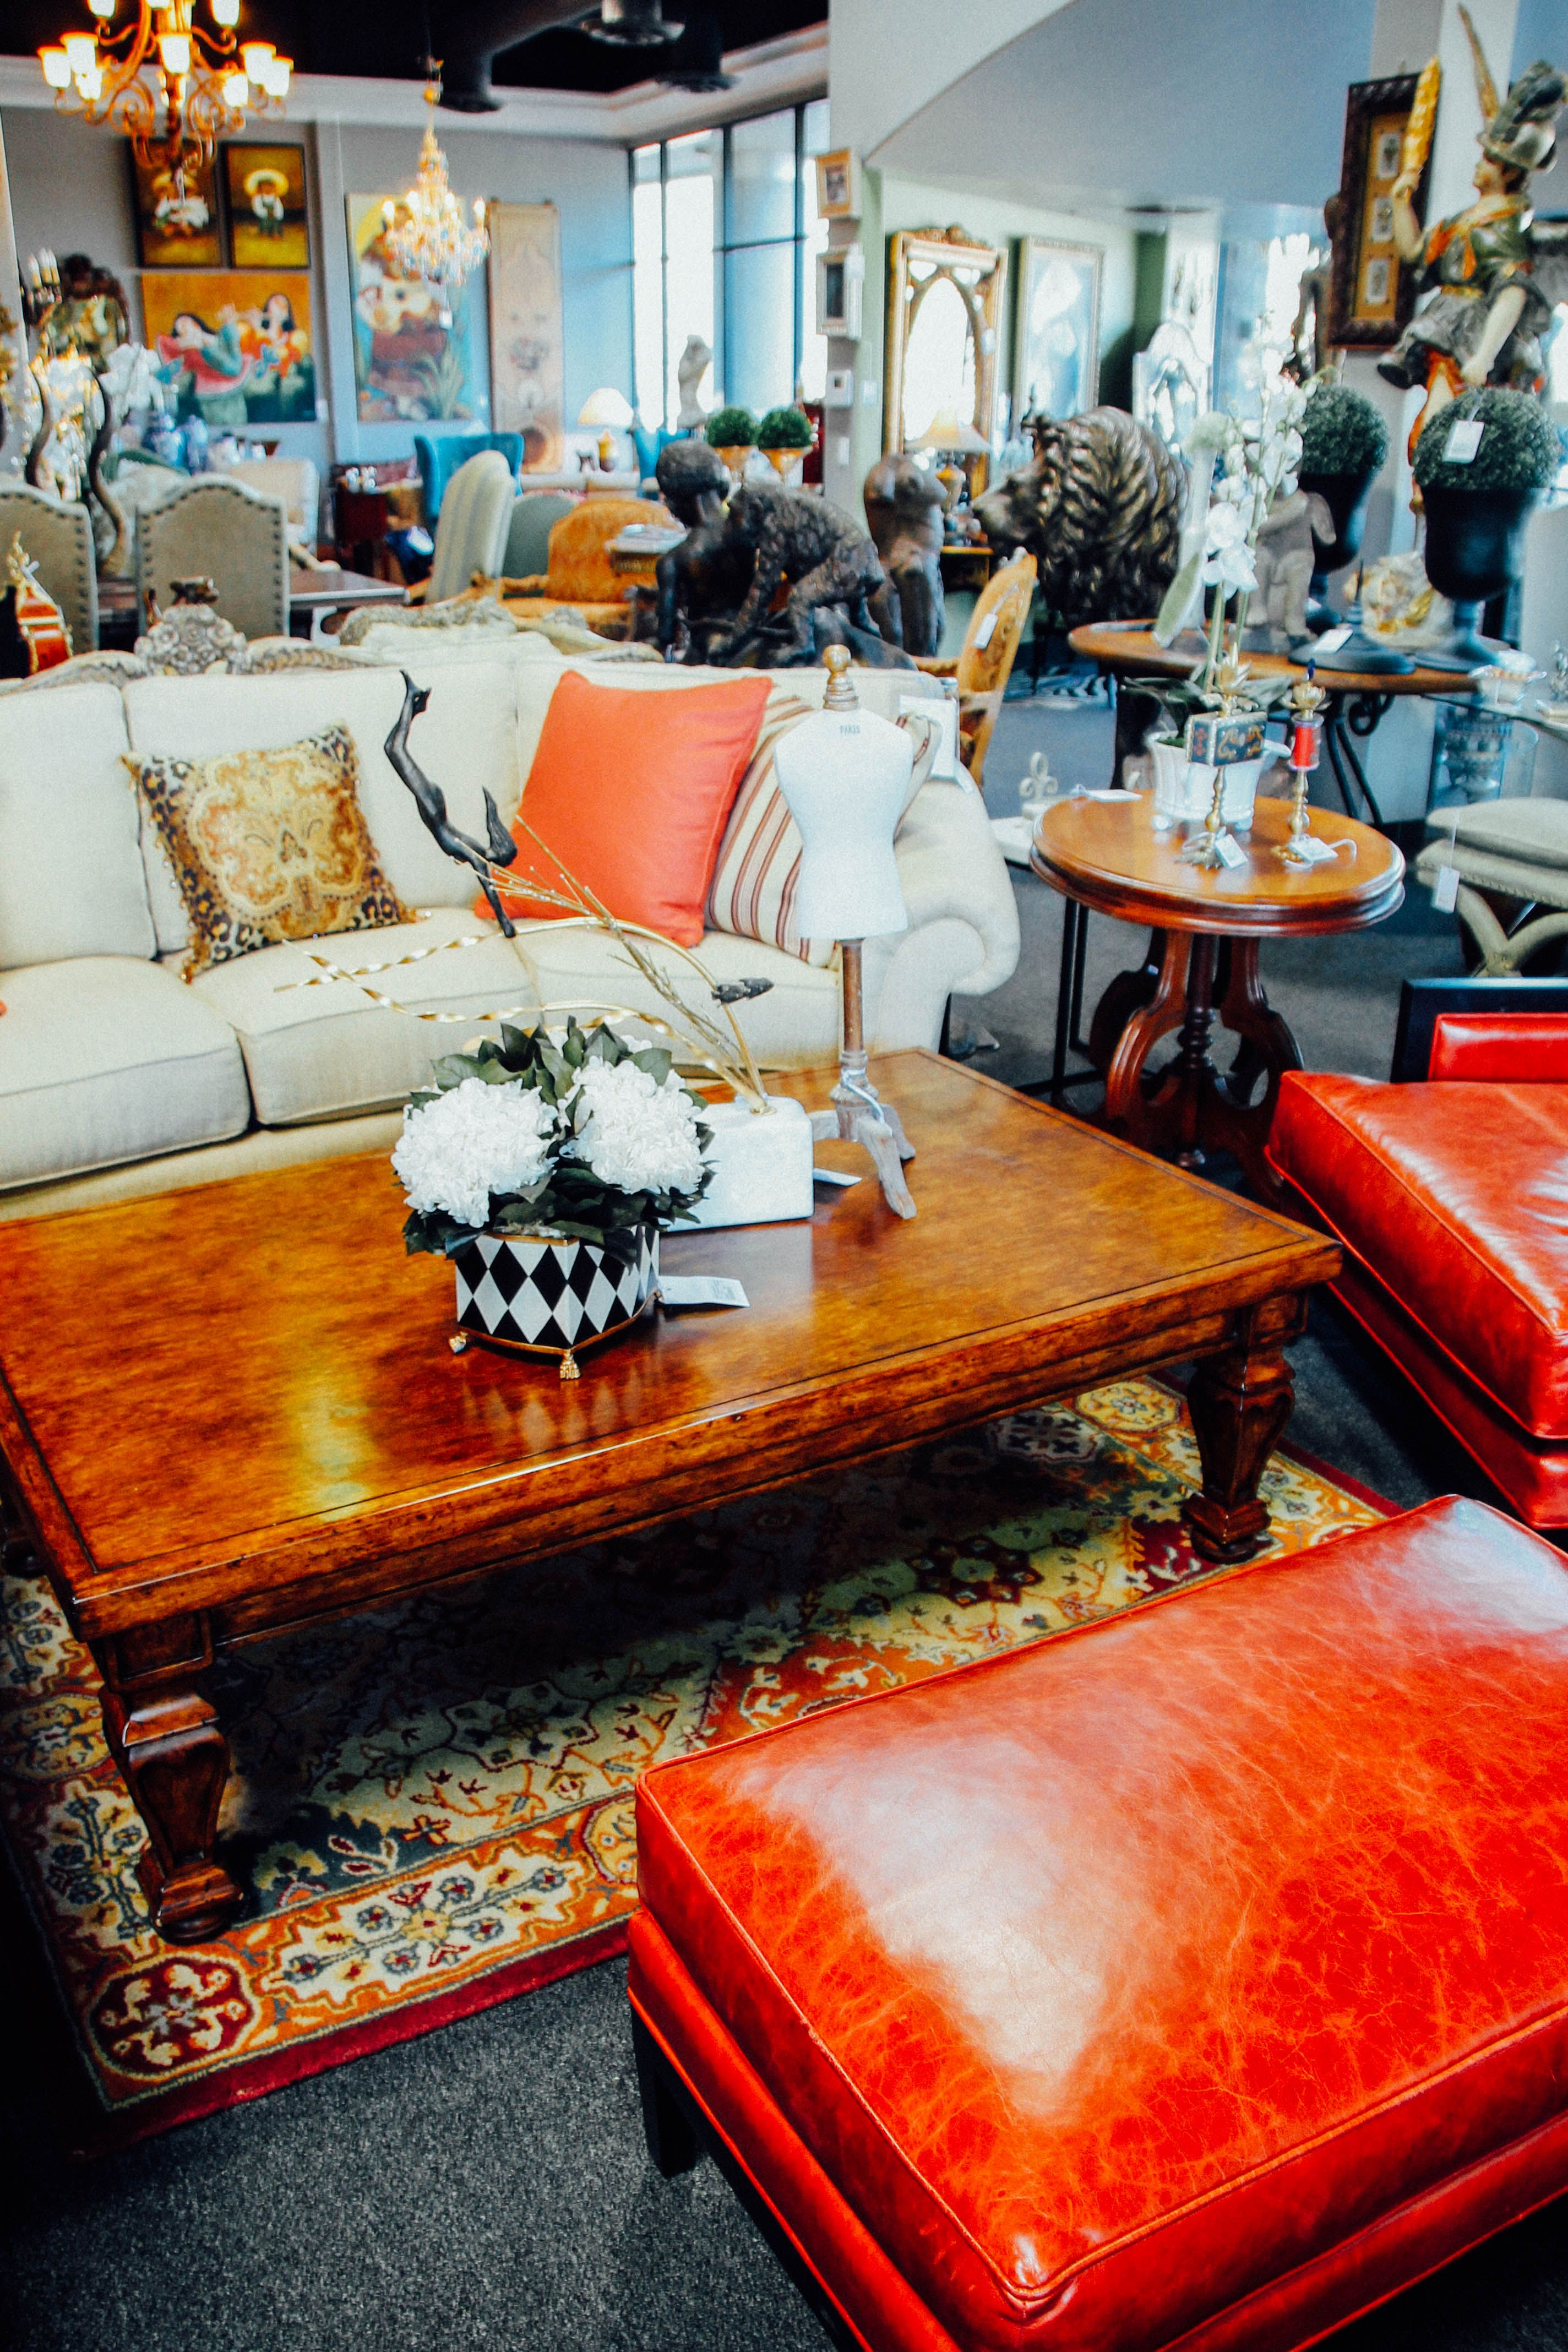 Wonderful Scottsdale Furniture Consignment, Antiques, Artwork And Home Accessories.